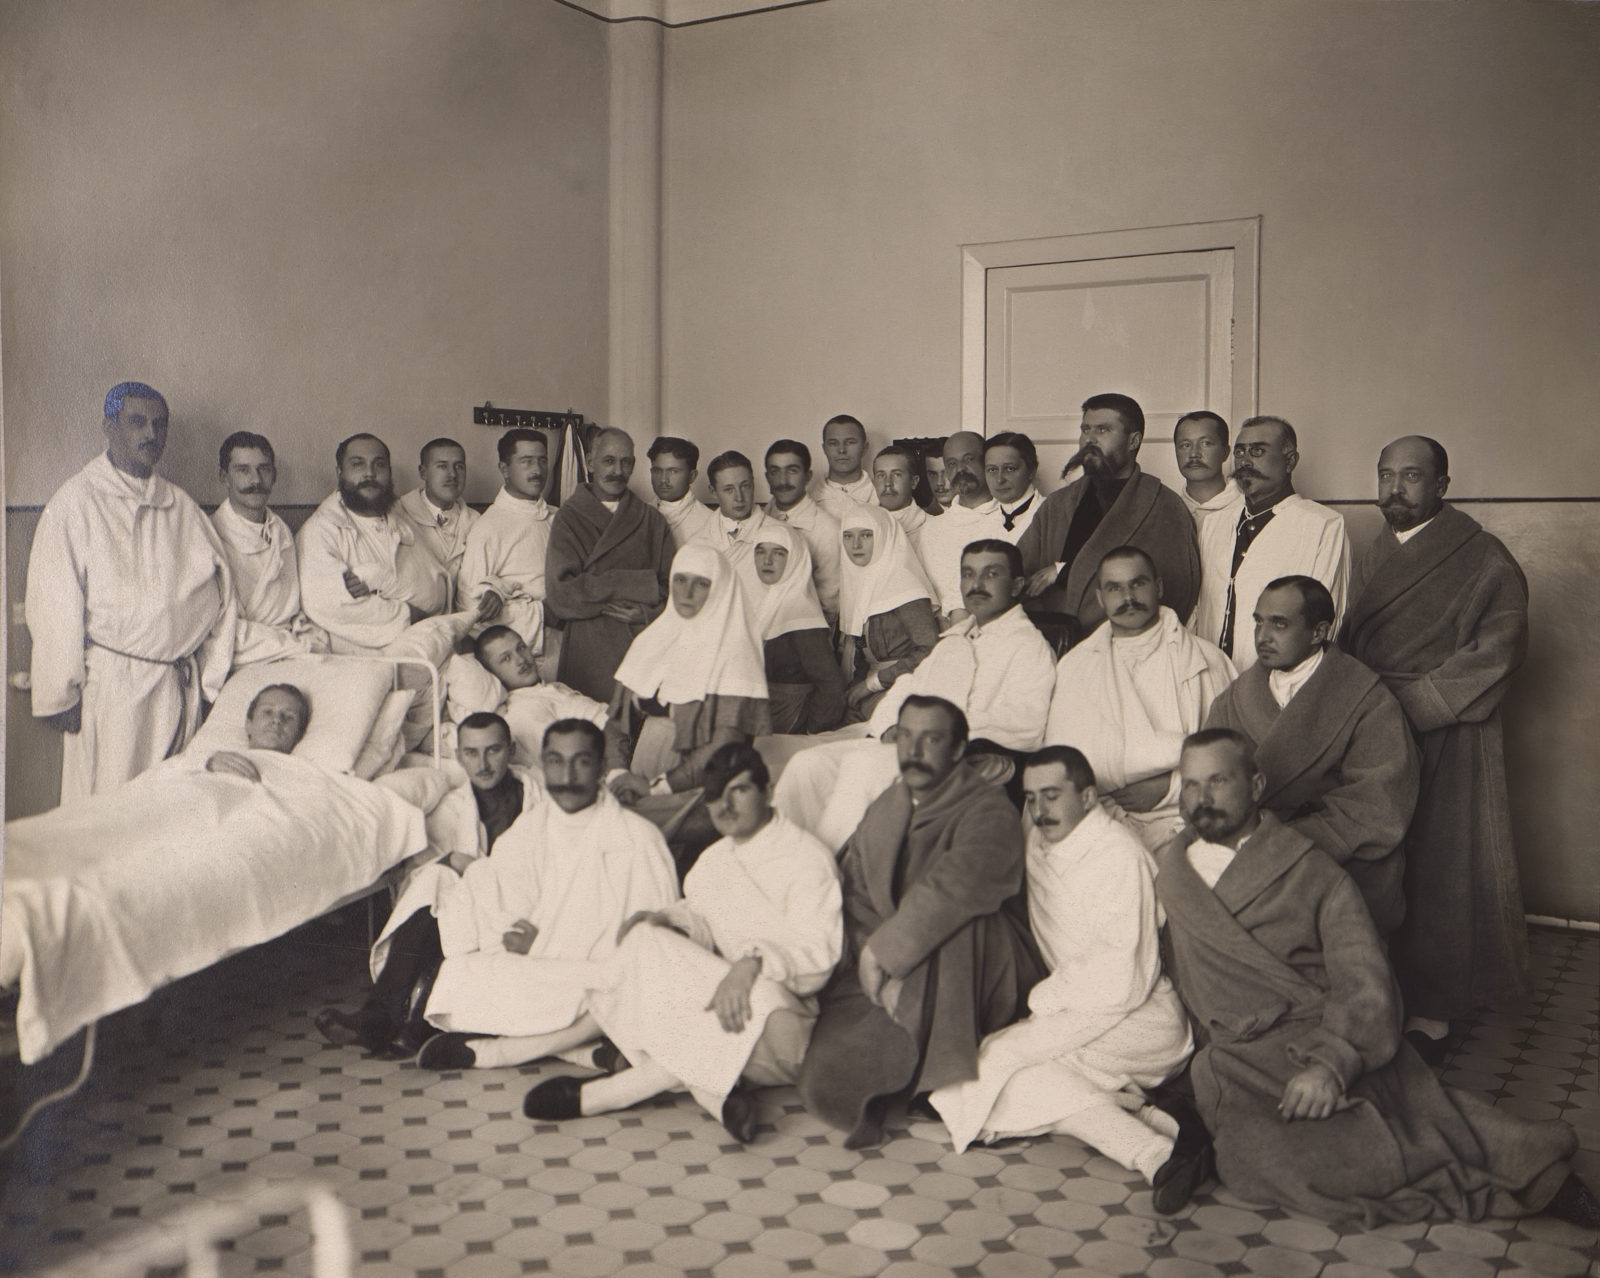 Grand Duchesses Olga, Tatiana, Maria, Empress Alexandra Feodorovna in the hospital for wounded soldiers.